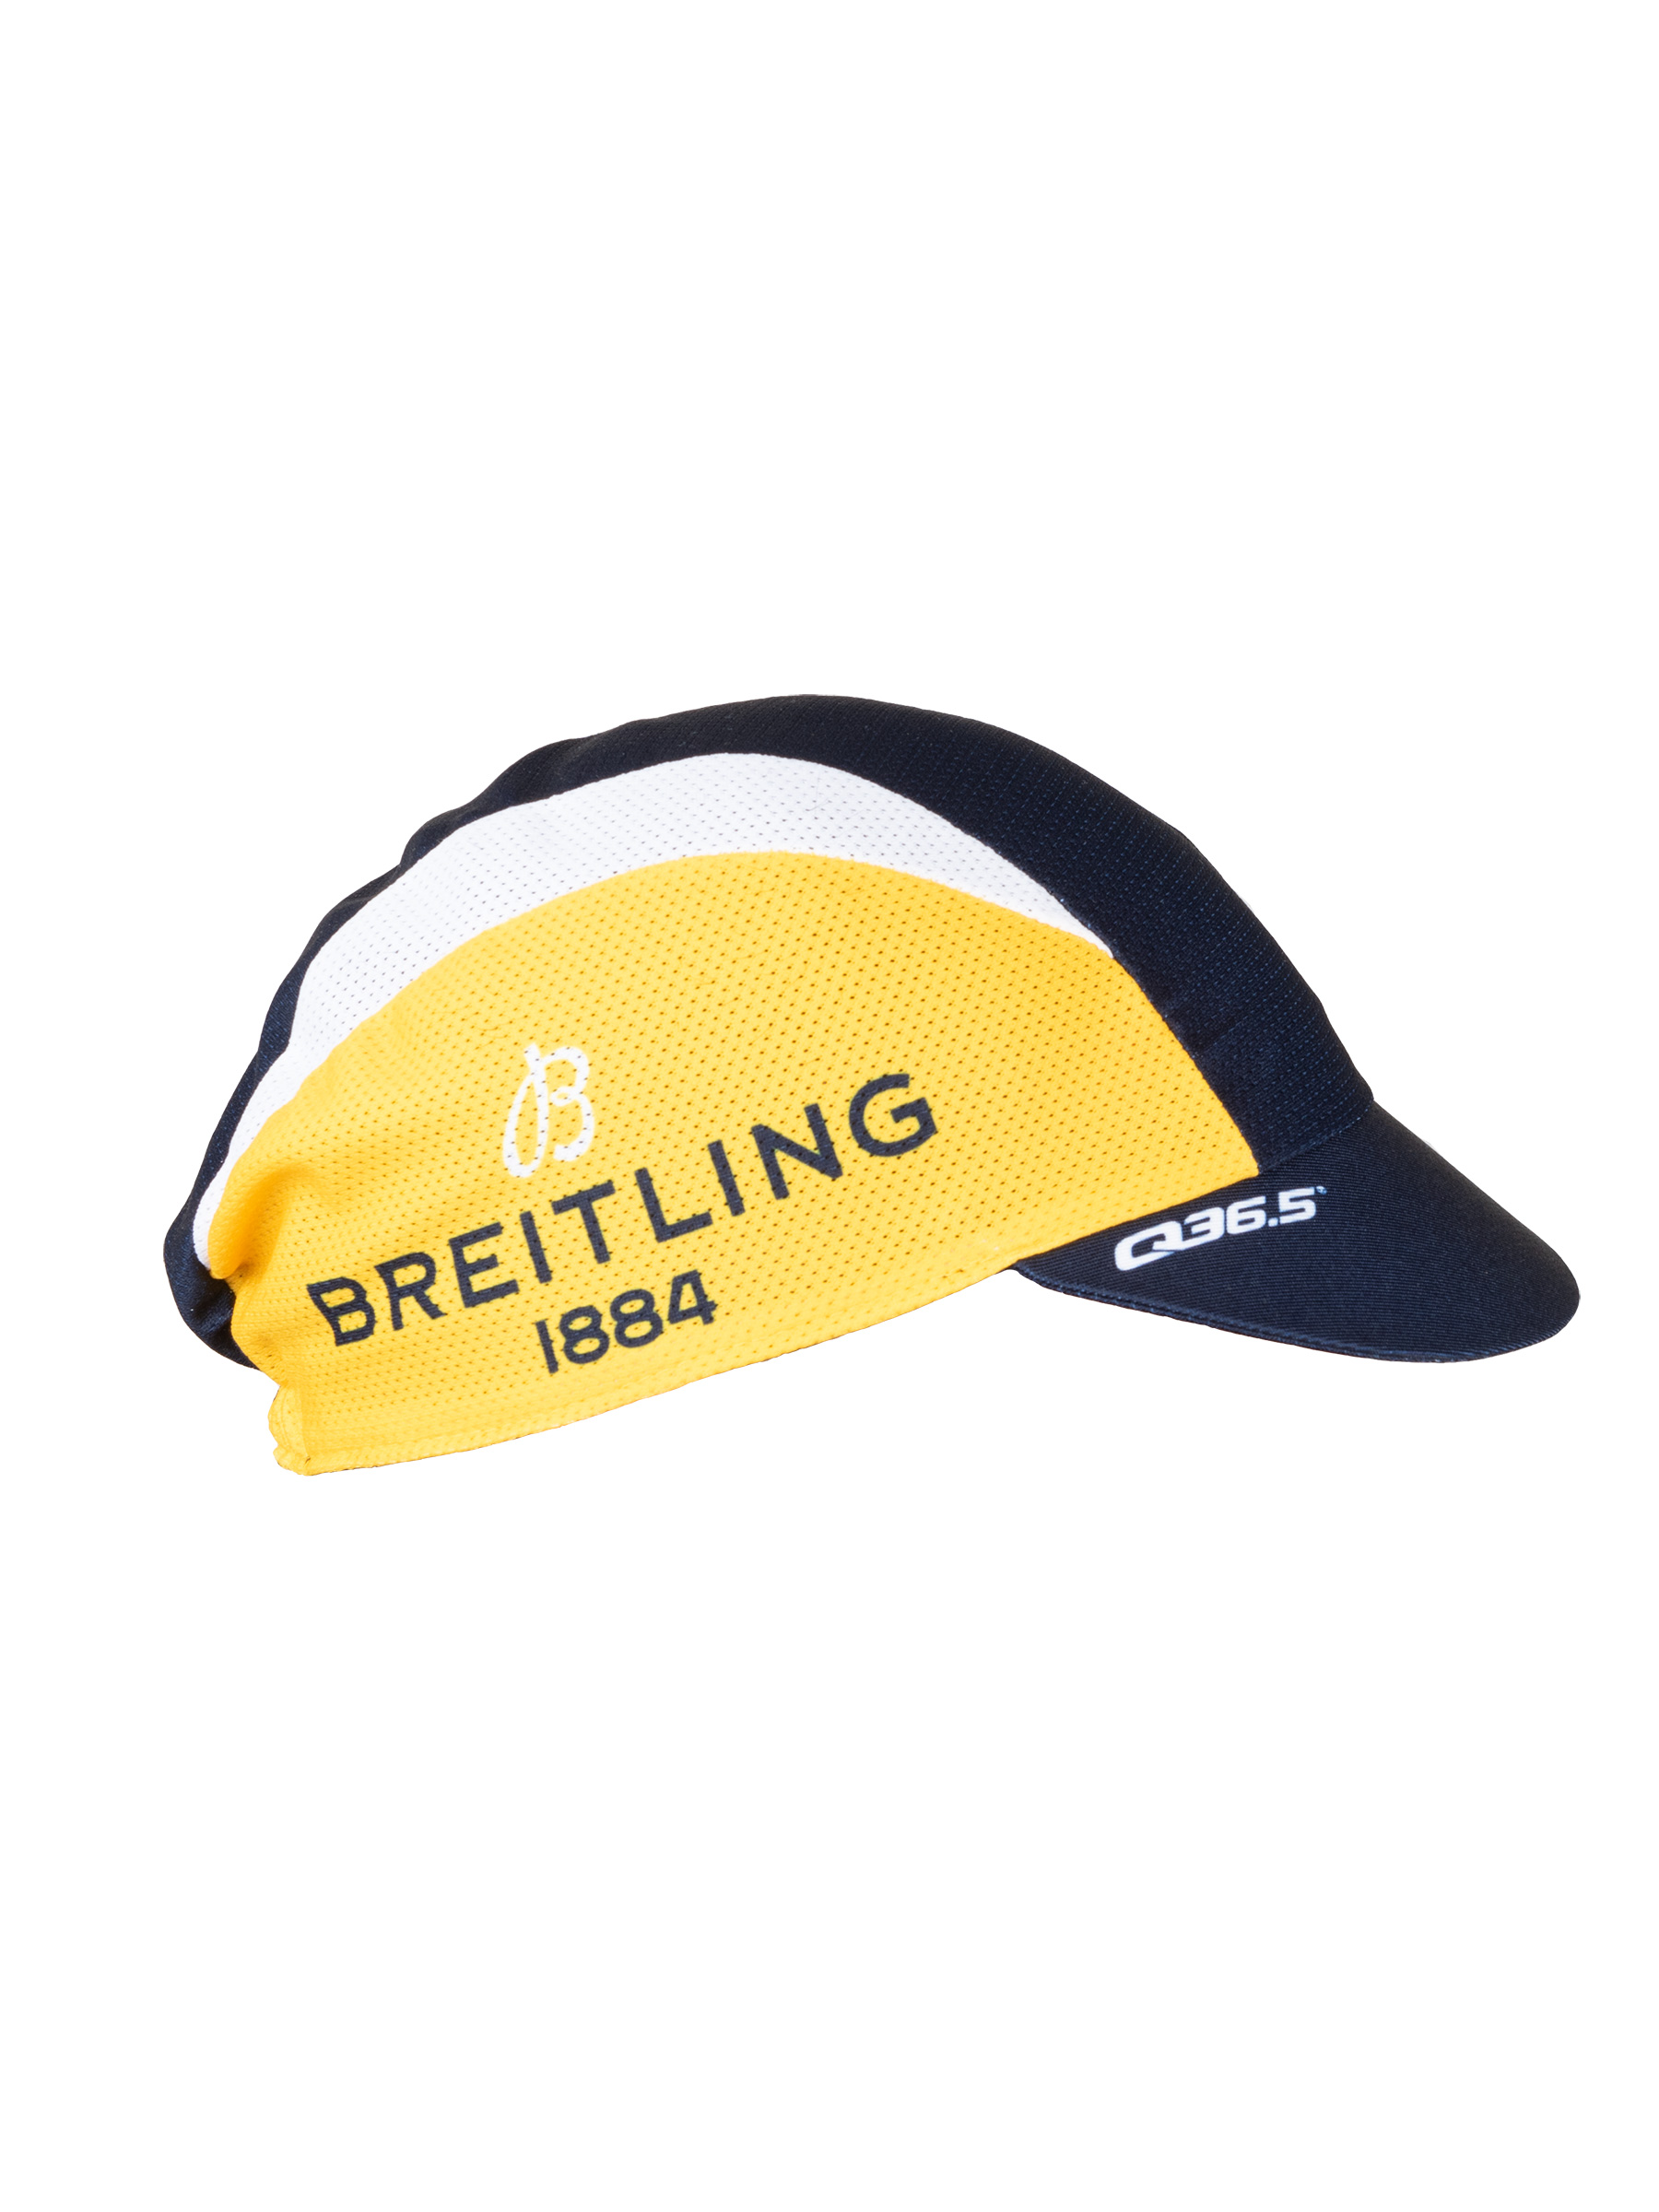 Breitling cycling summer cap